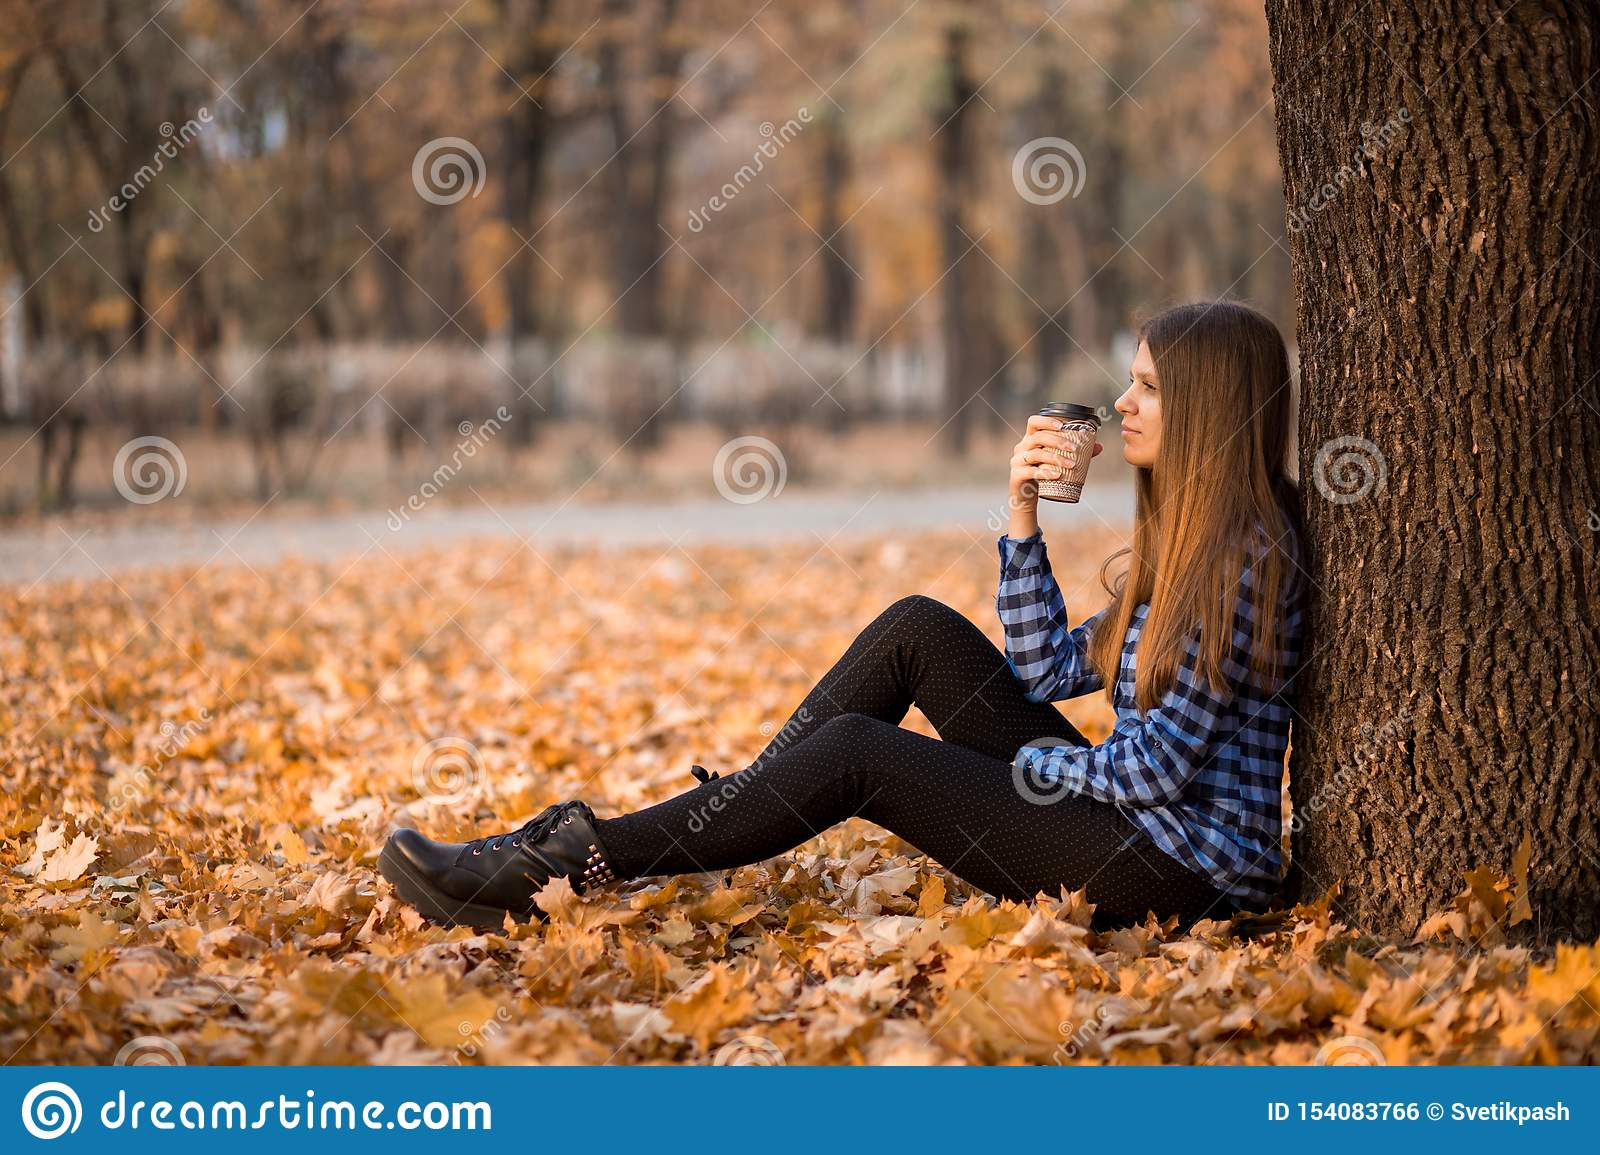 Fall concept. Happy and cheerful woman drinking coffee while sitting on park leaves under fall foliage.